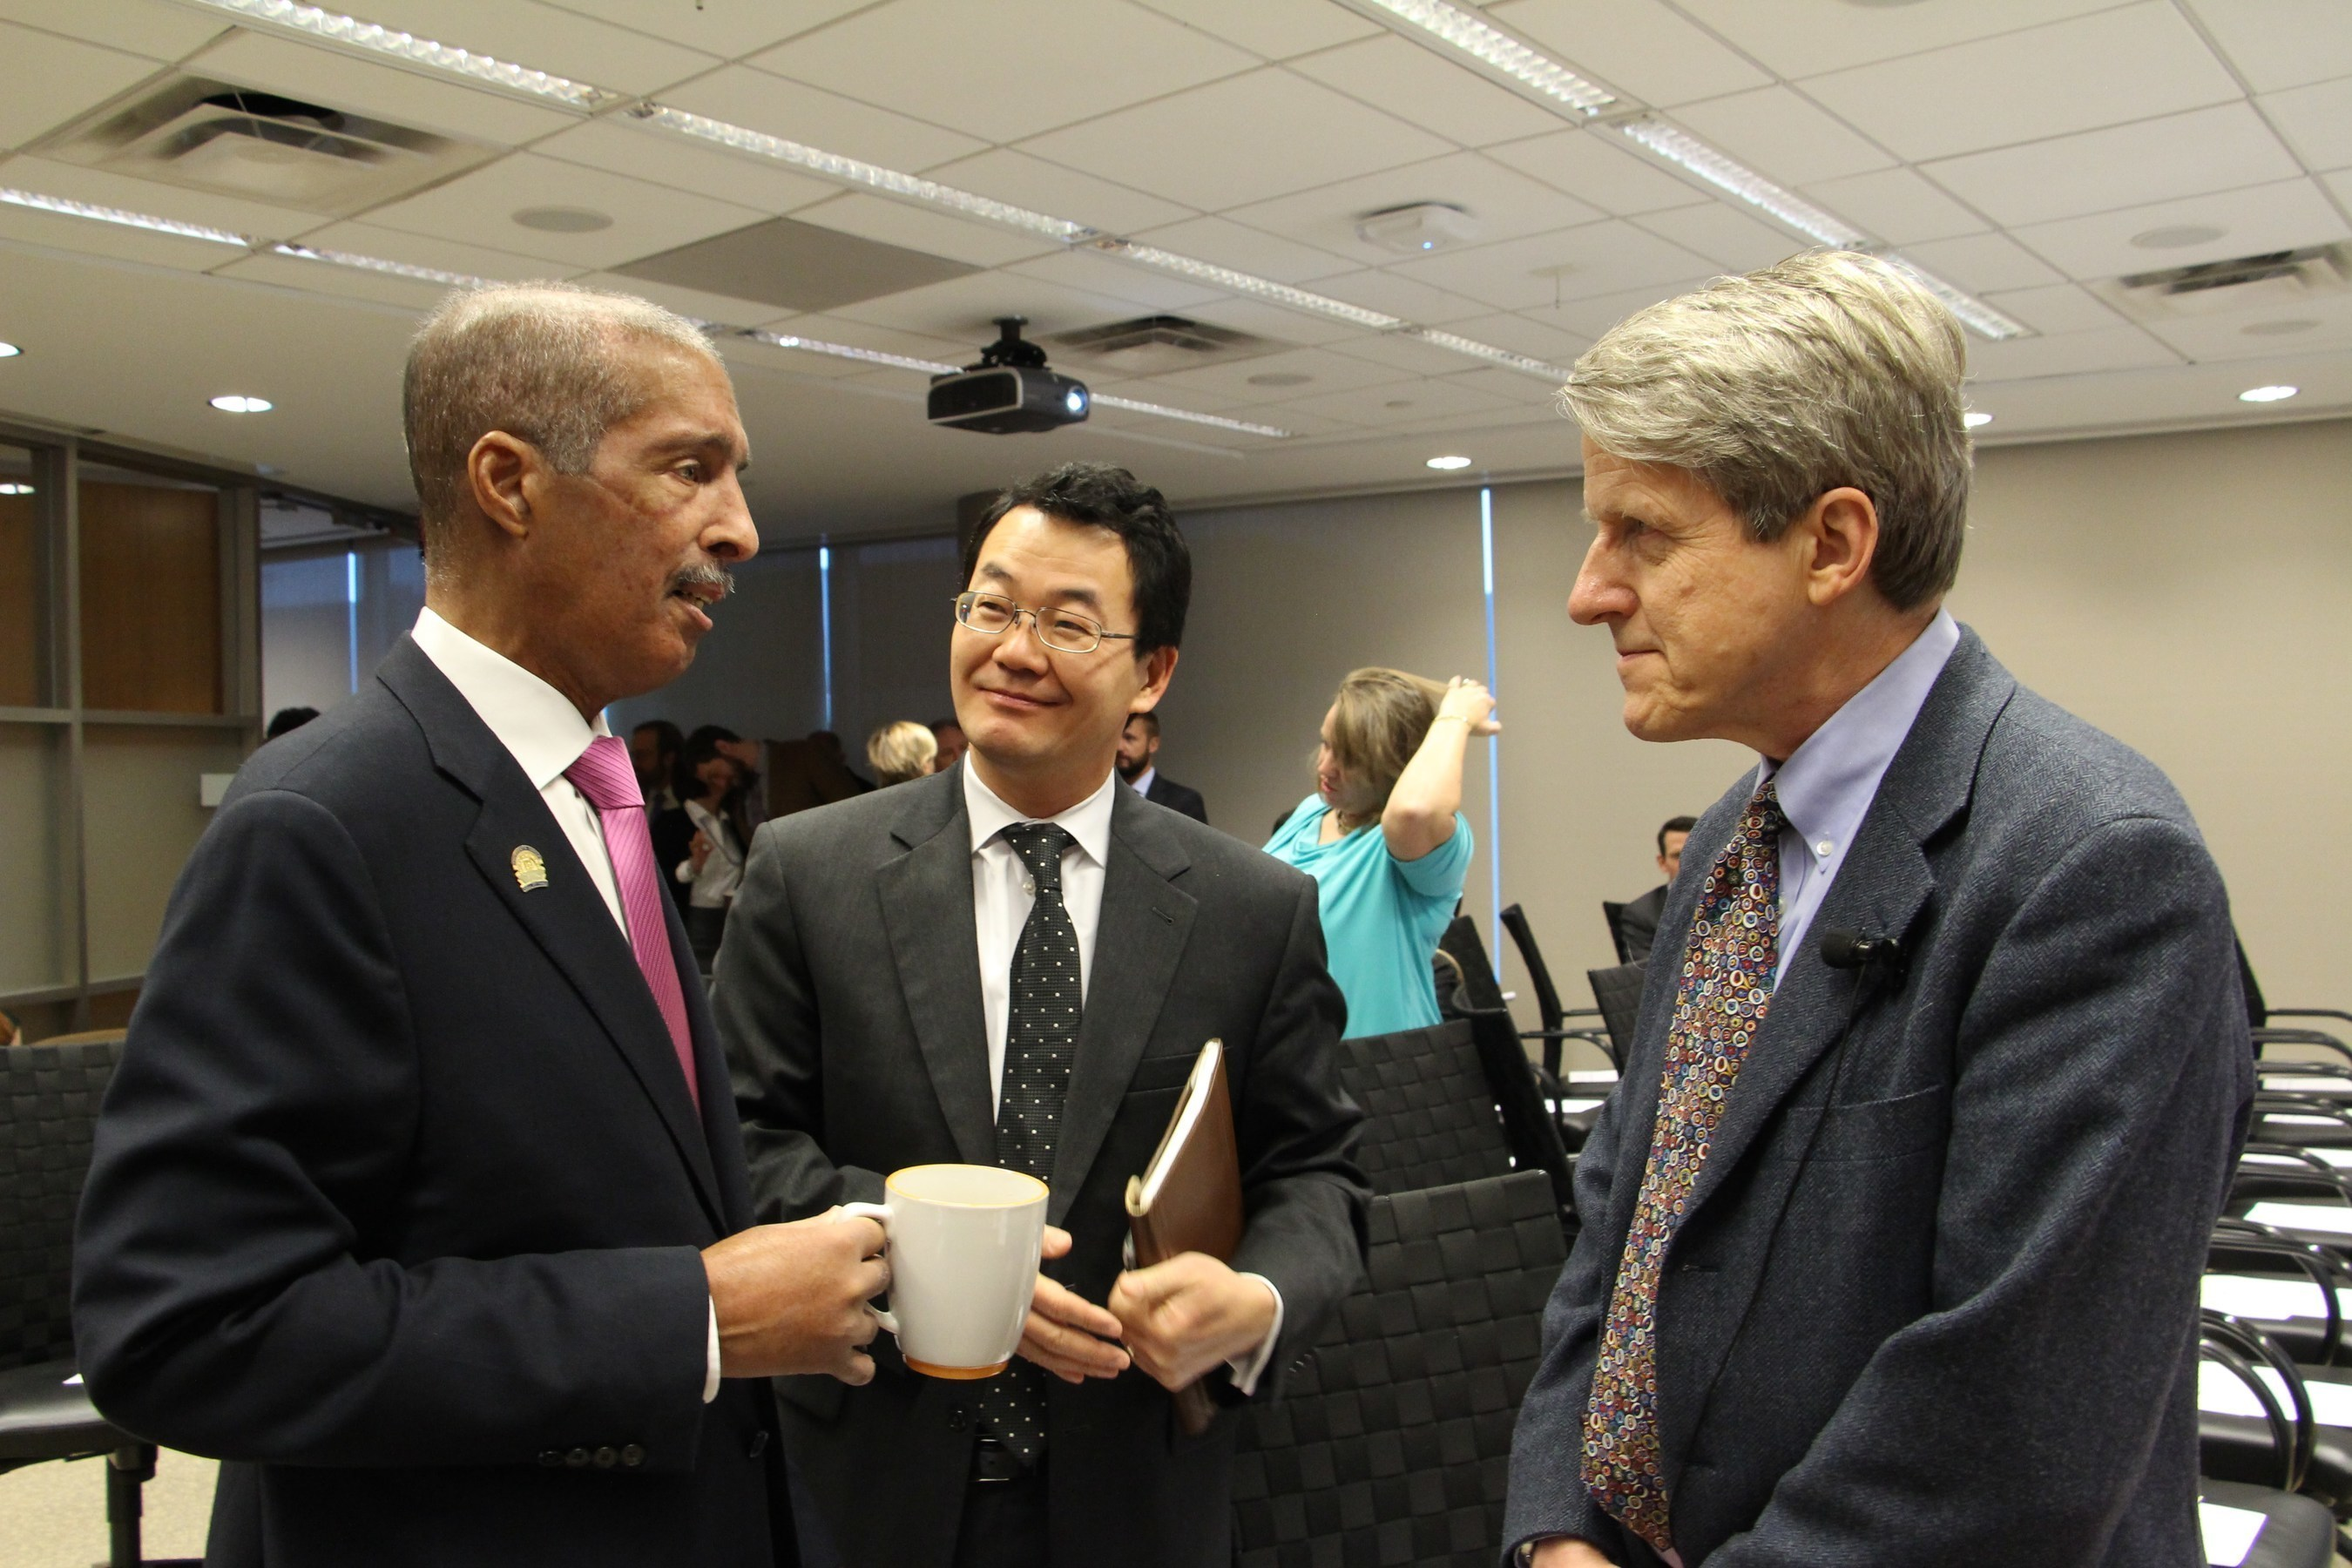 NAR president William E. Brown talks with NAR Chief Economist Lawrence Yun and Dr. Robert Shiller